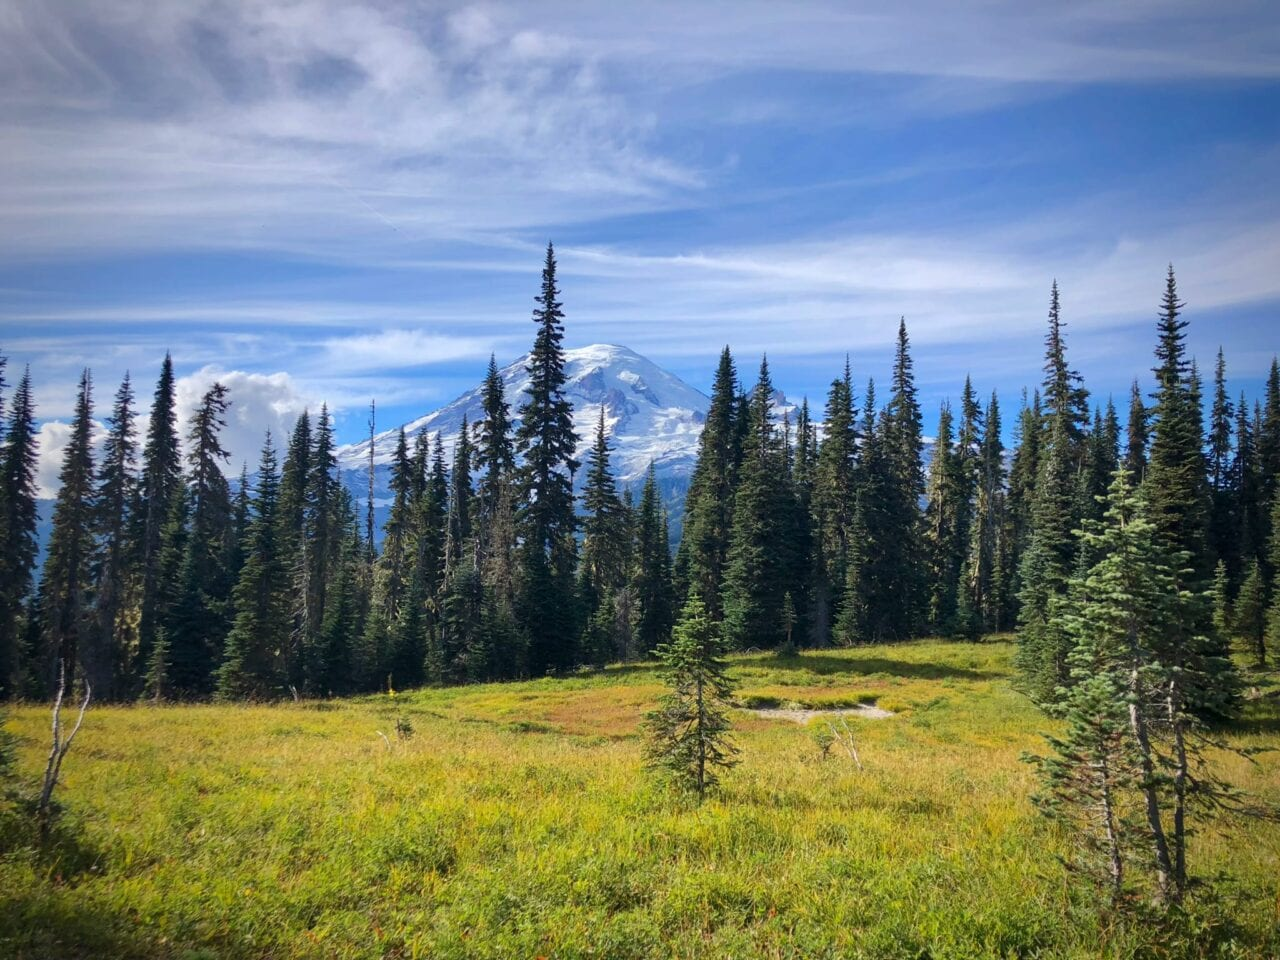 Mount Rainier is an imposing backdrop to a lush green meadow and stand of evergreens on the Wonderland Trail.